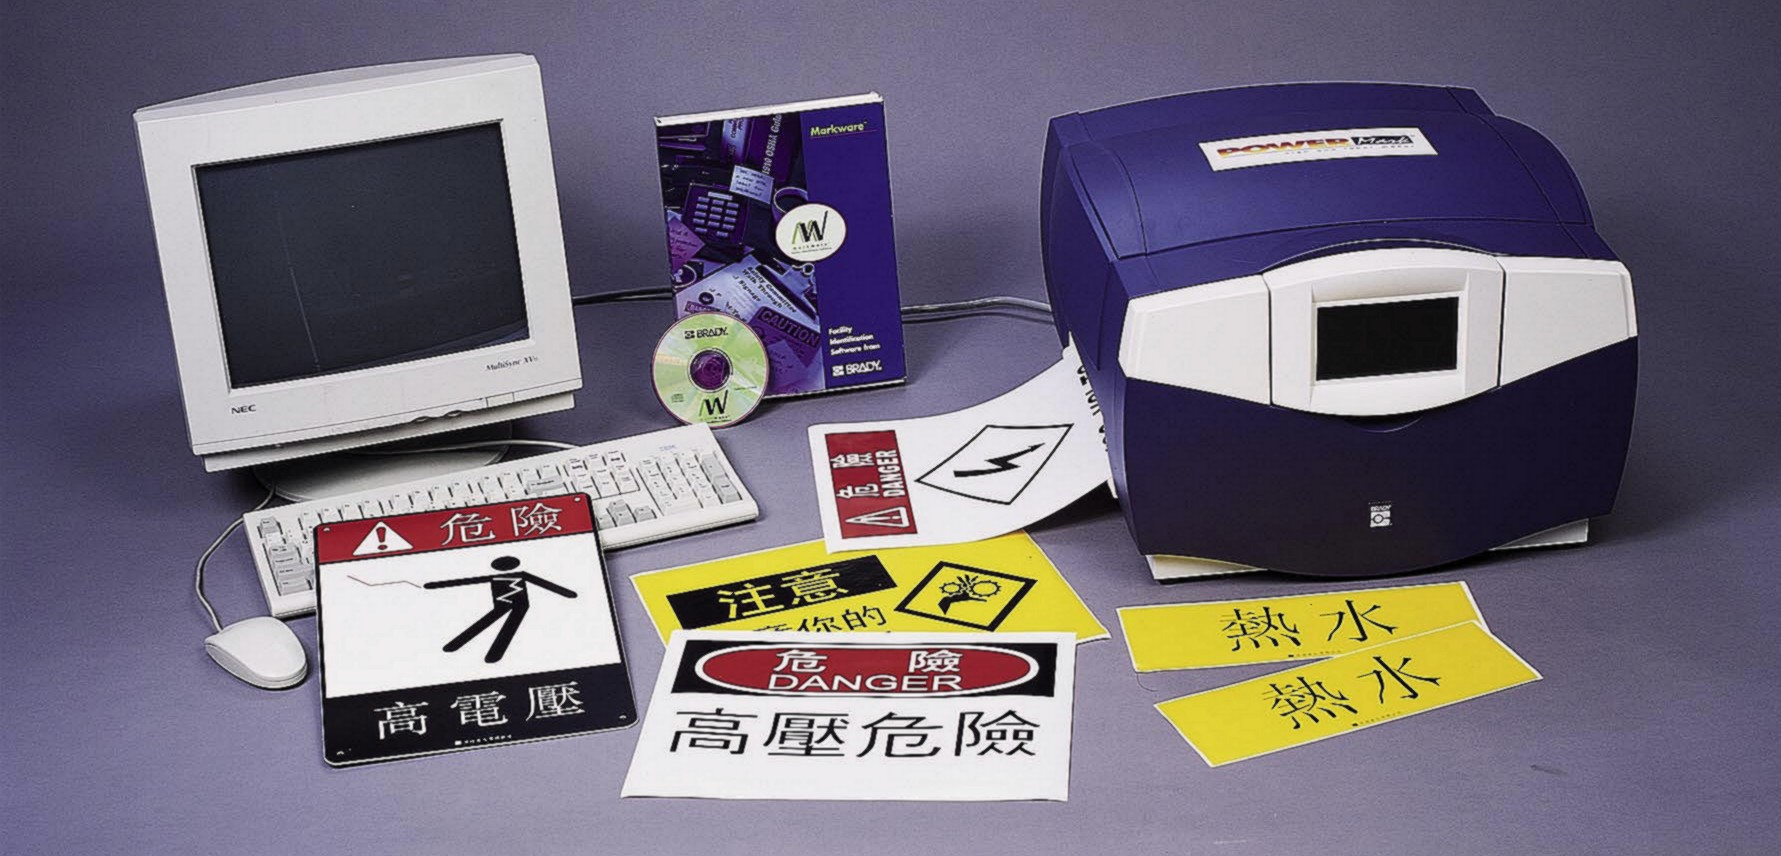 It's just a photo of Bright Brady Labelizer Plus Industrial Labeling System